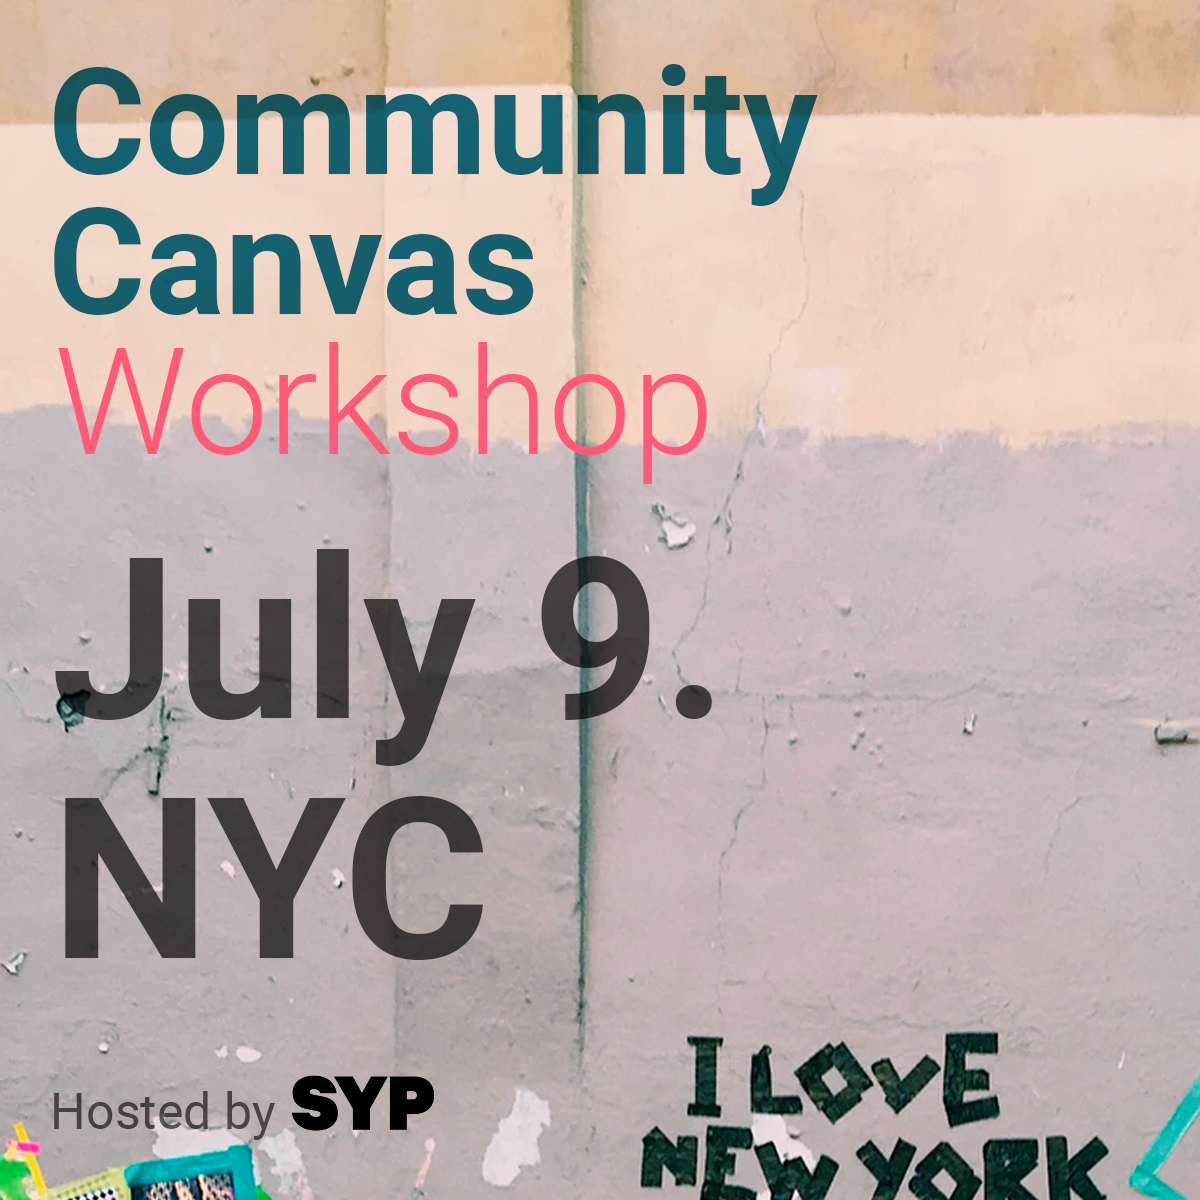 Community Canvas Workshop NYC July 9 SYP.jpg